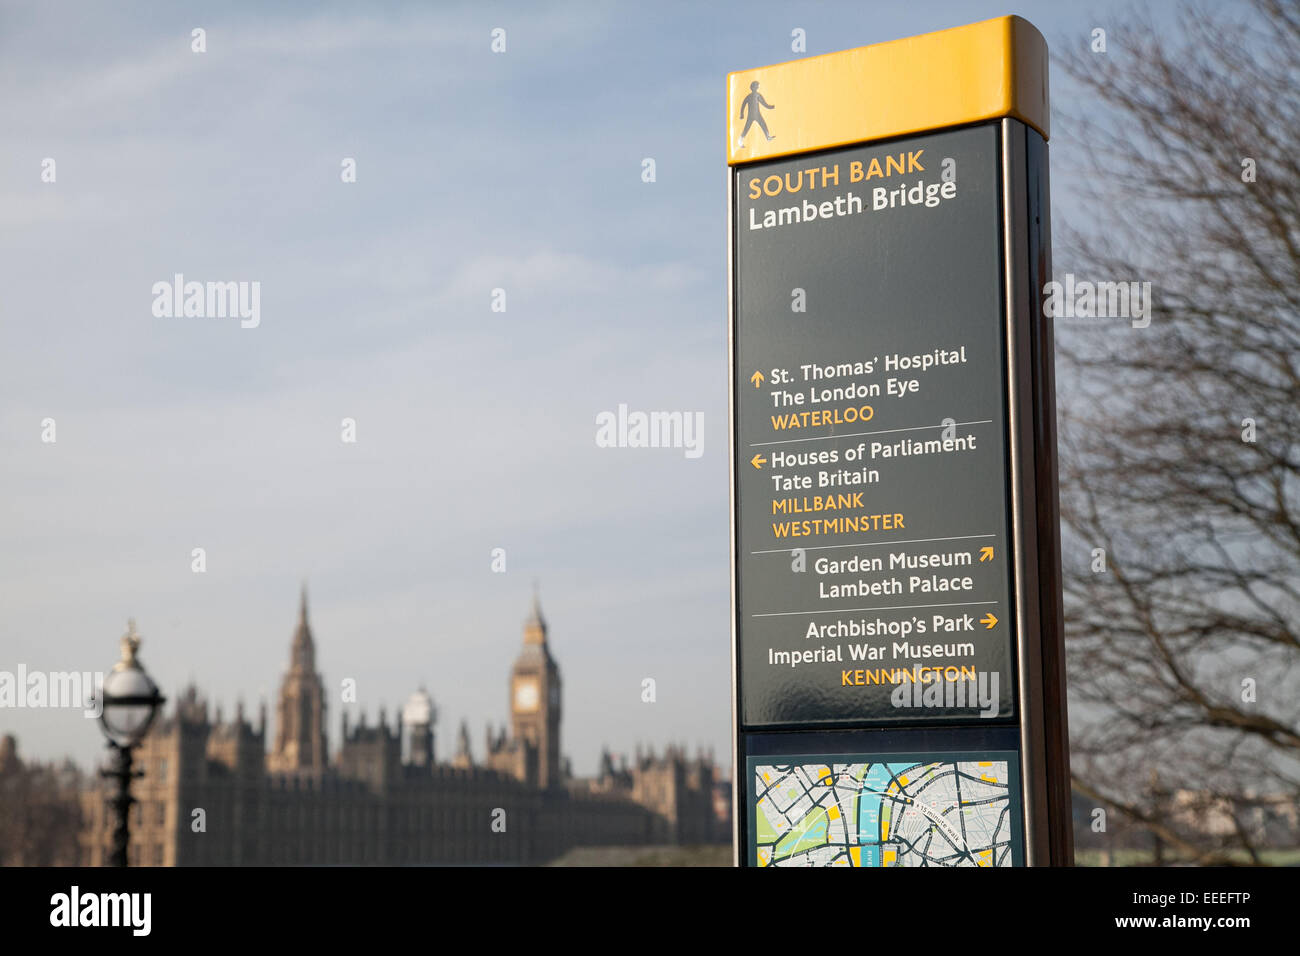 Legible London signage at Lambeth Bridge with Westminster visible in the background - Stock Image